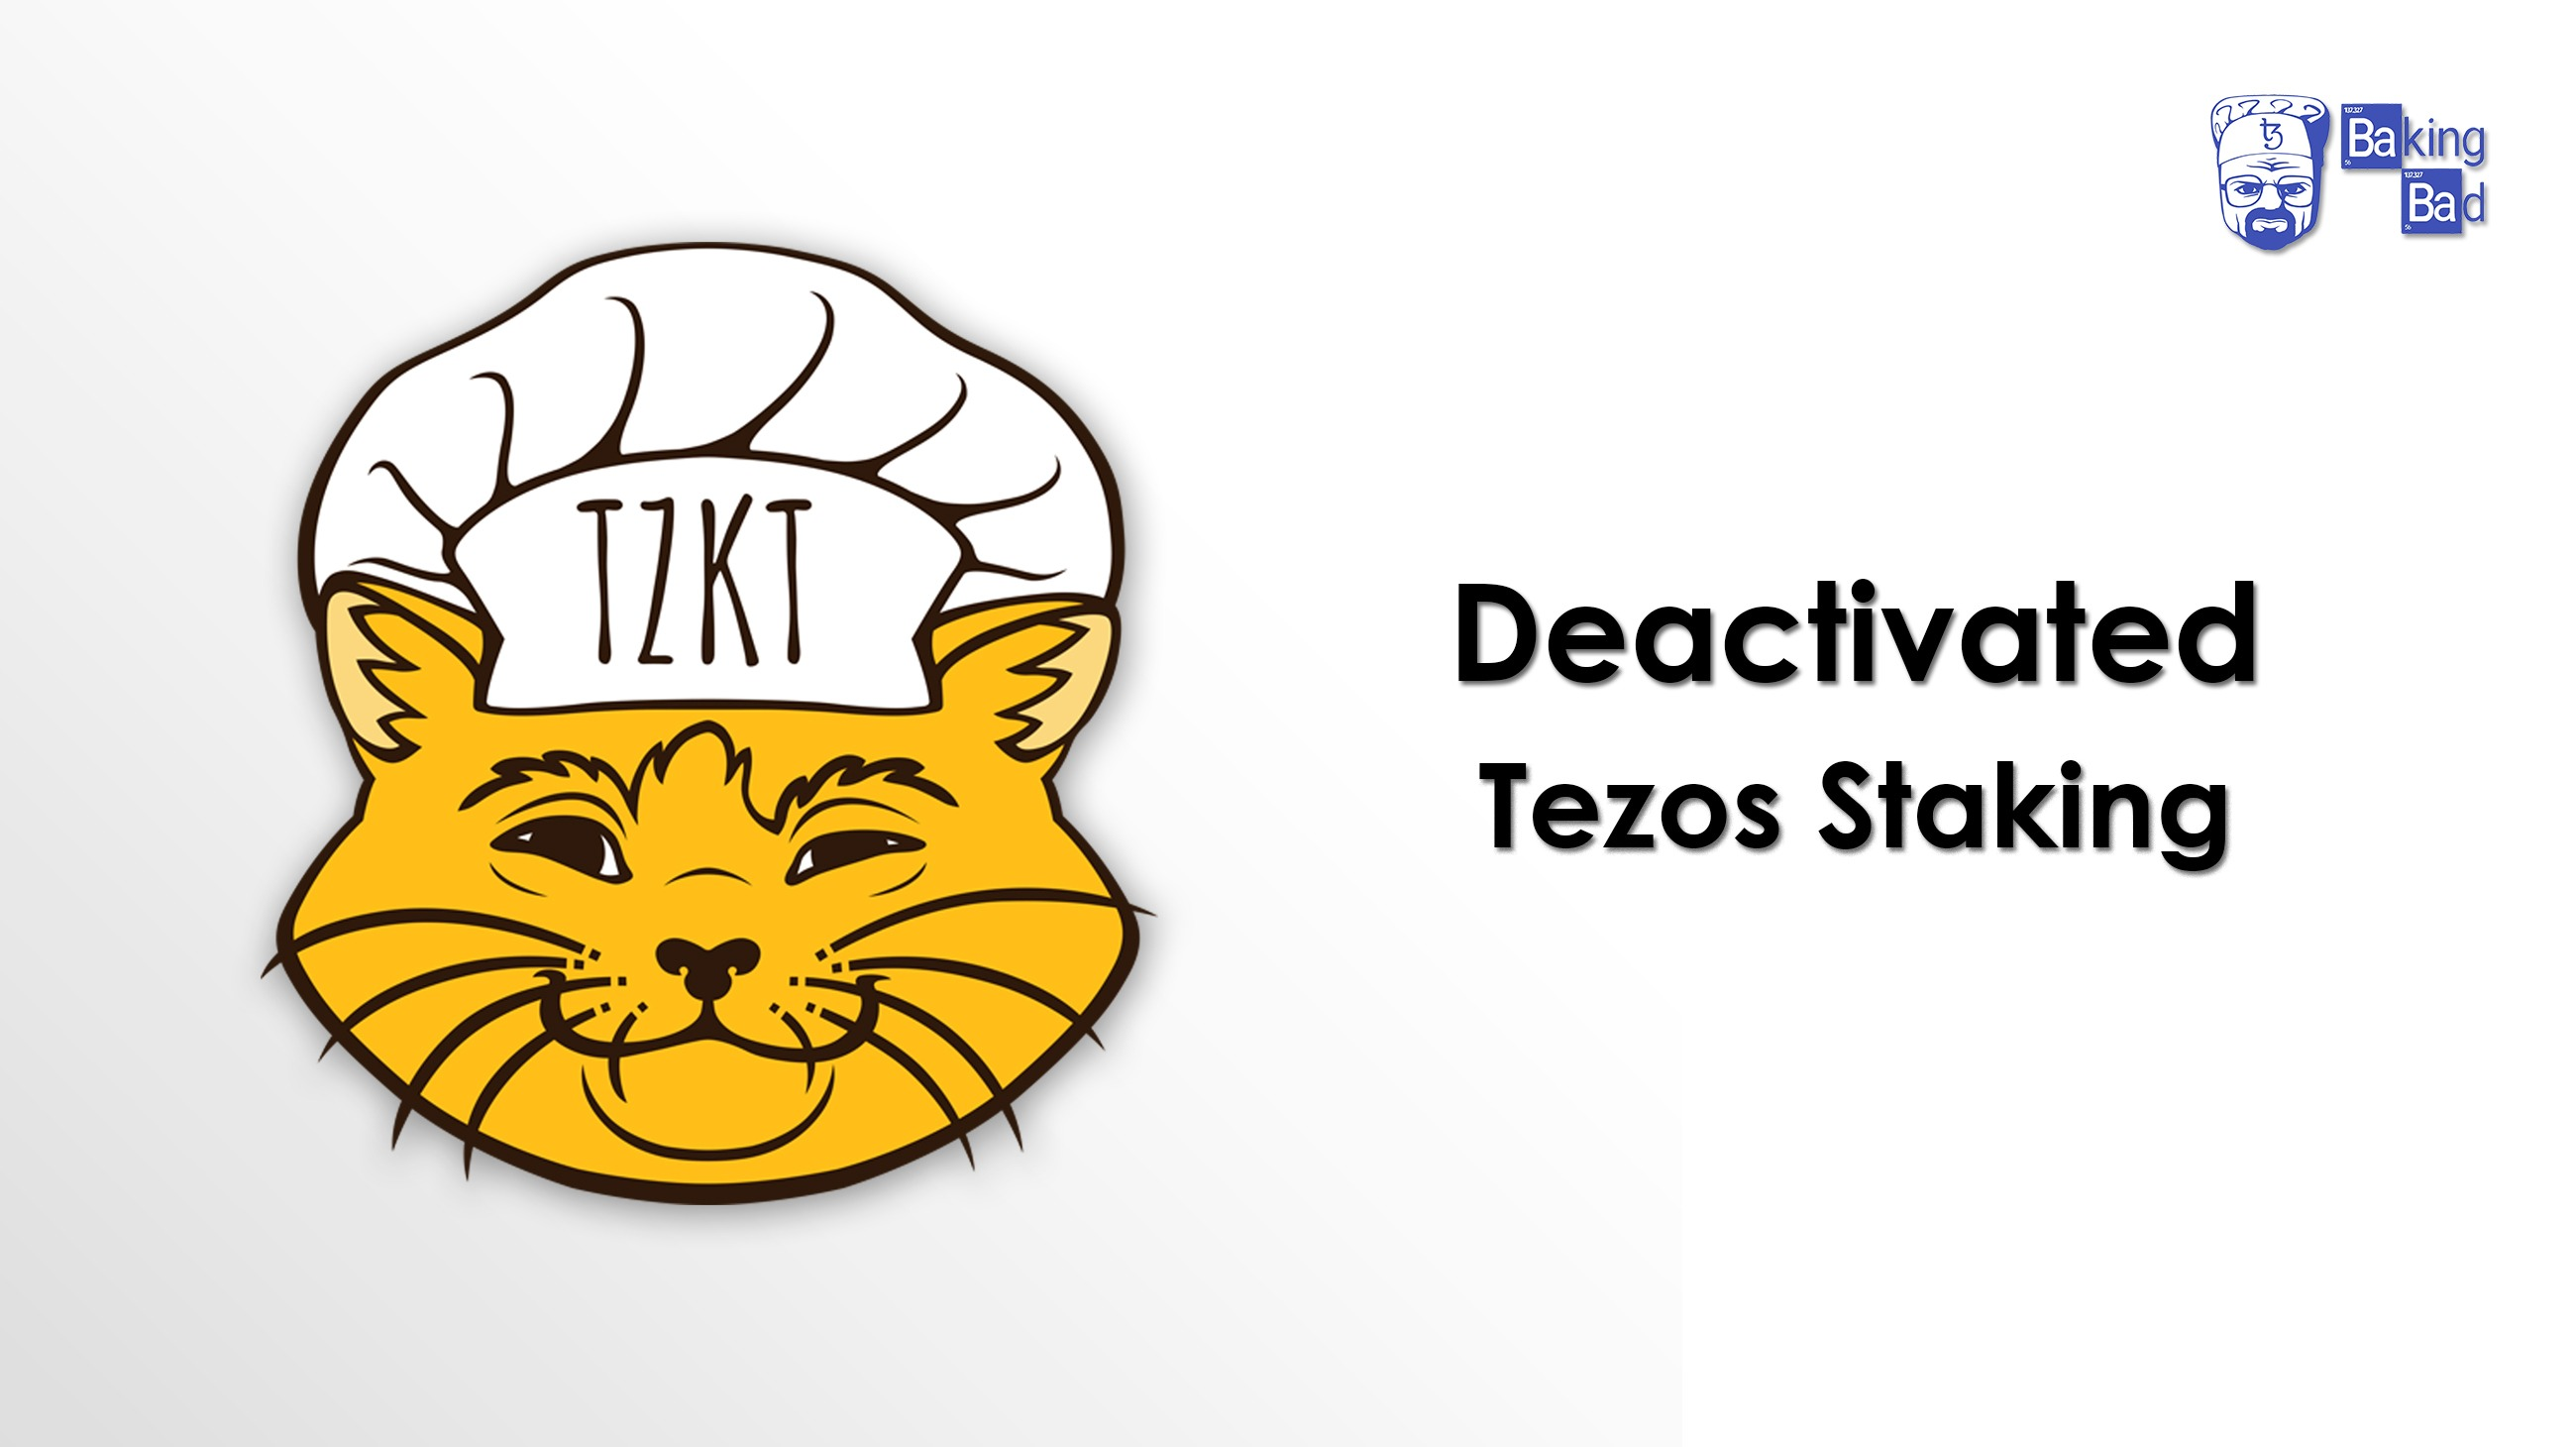 Deactivated Tezos Staking